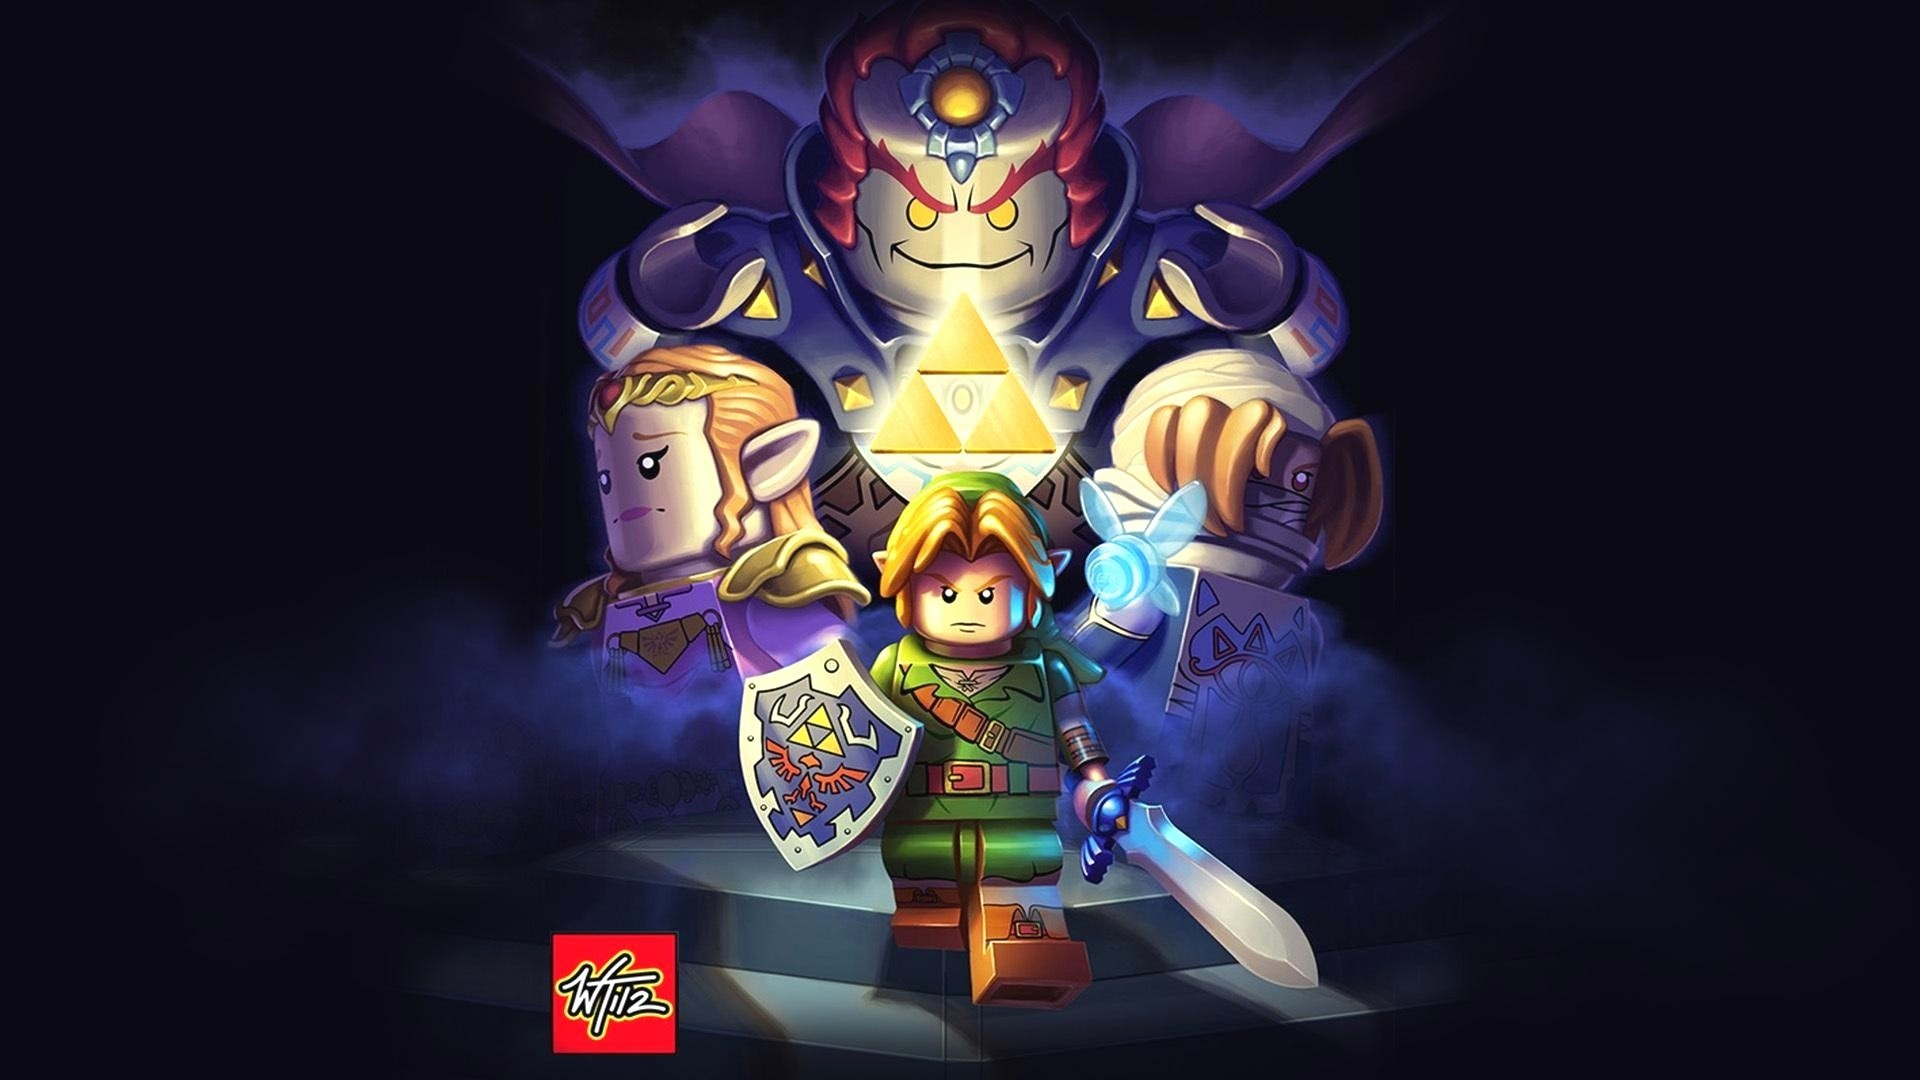 1920x1080 1080x1920 Link The Legend Of Zelda Wallpaper X xpx HD Wallpapers | HD  Wallpapers | Pinterest